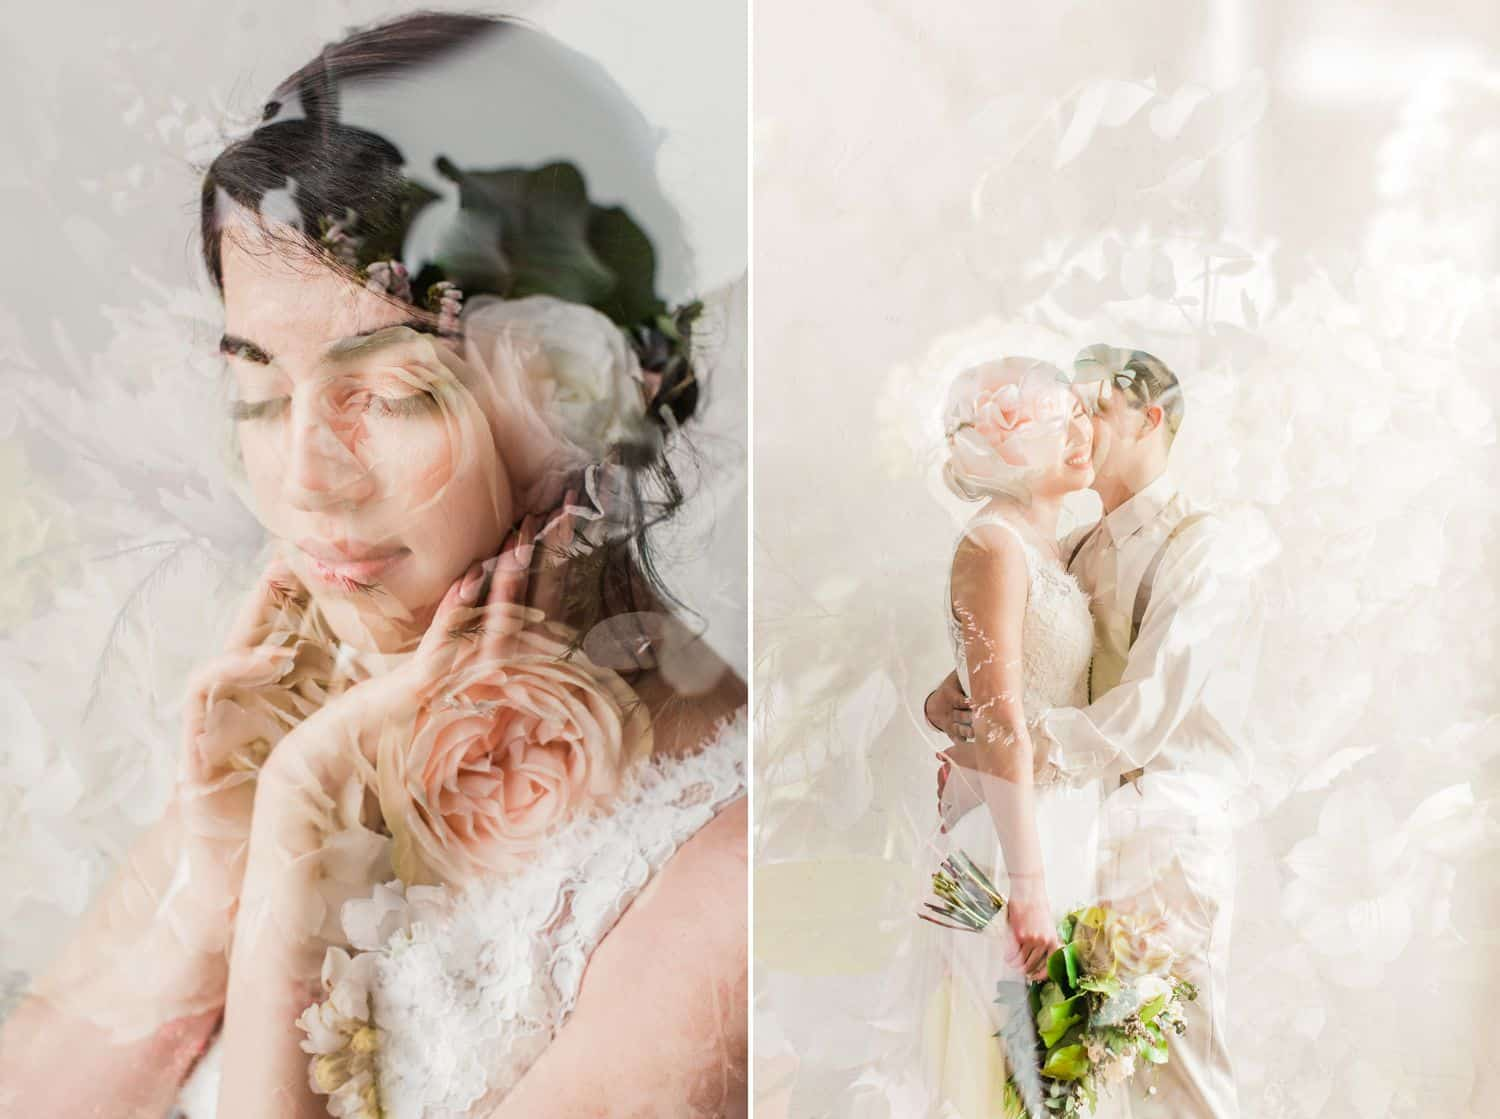 Tips for an Easy, Affordable Styled Shoot (double exposure of wedding couple over flowers)